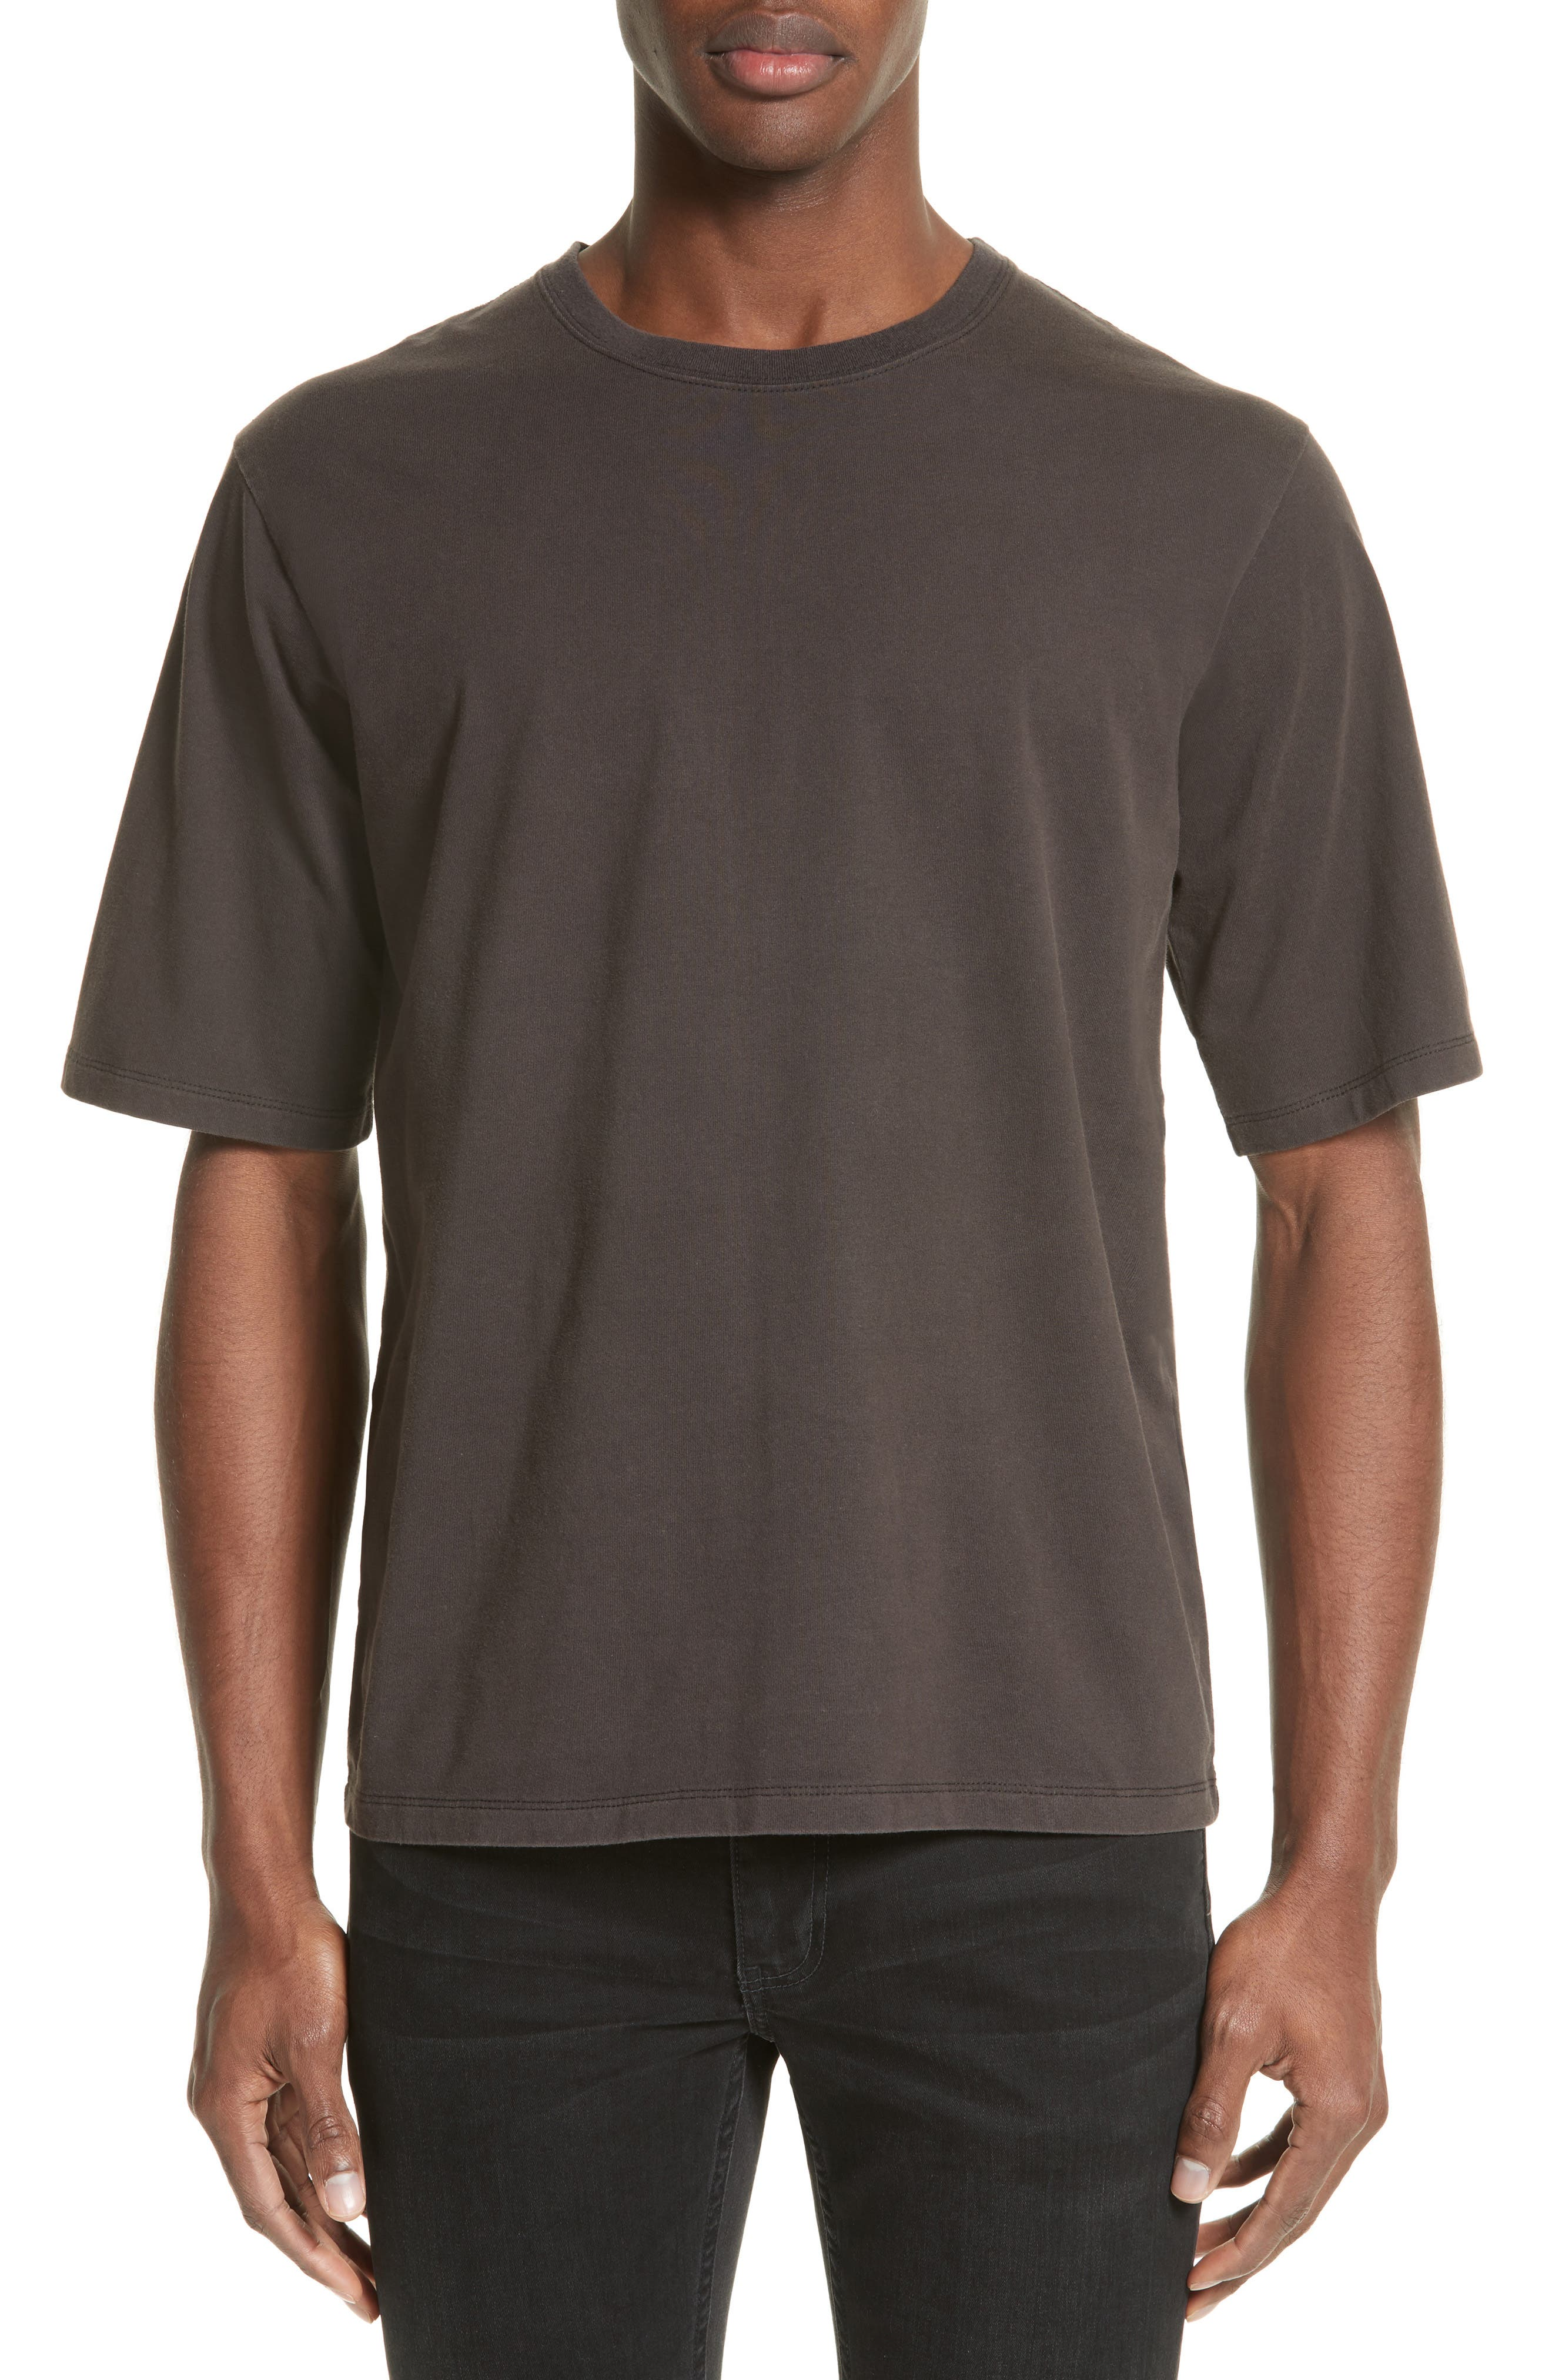 Alternate Image 1 Selected - OVADIA & SONS Type-01 T-Shirt